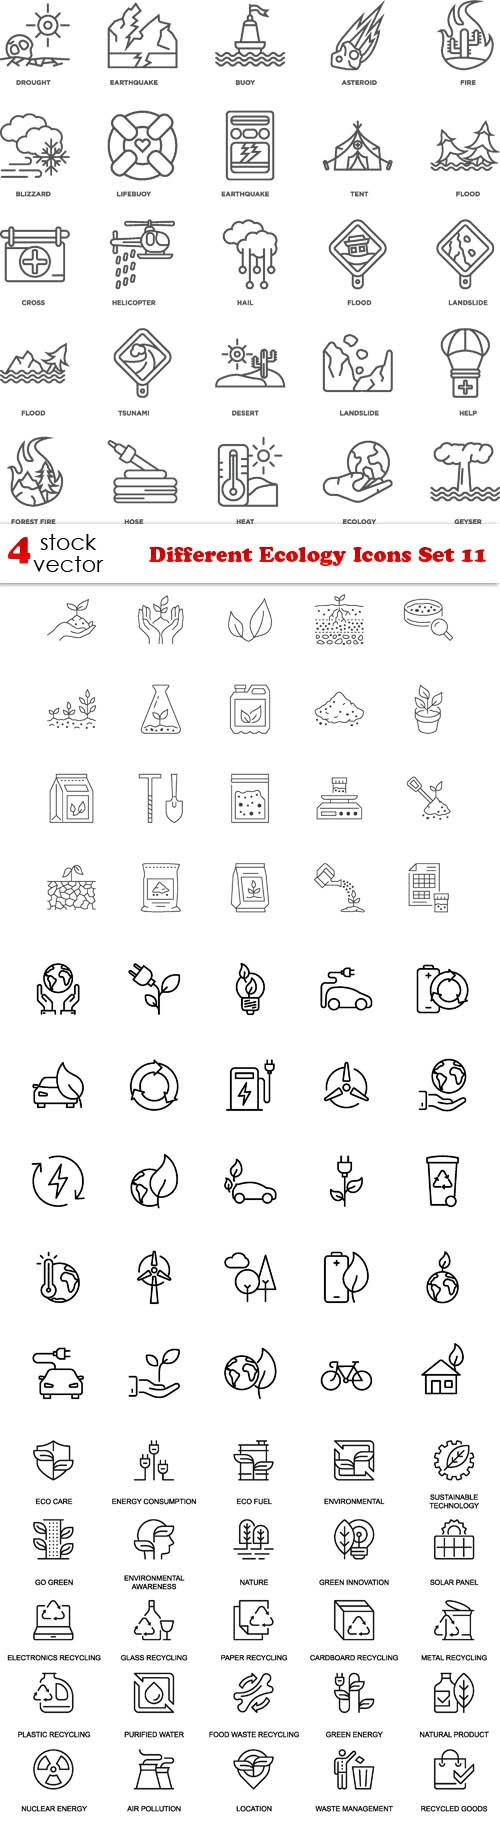 Vectors - Different Ecology Icons Set 11